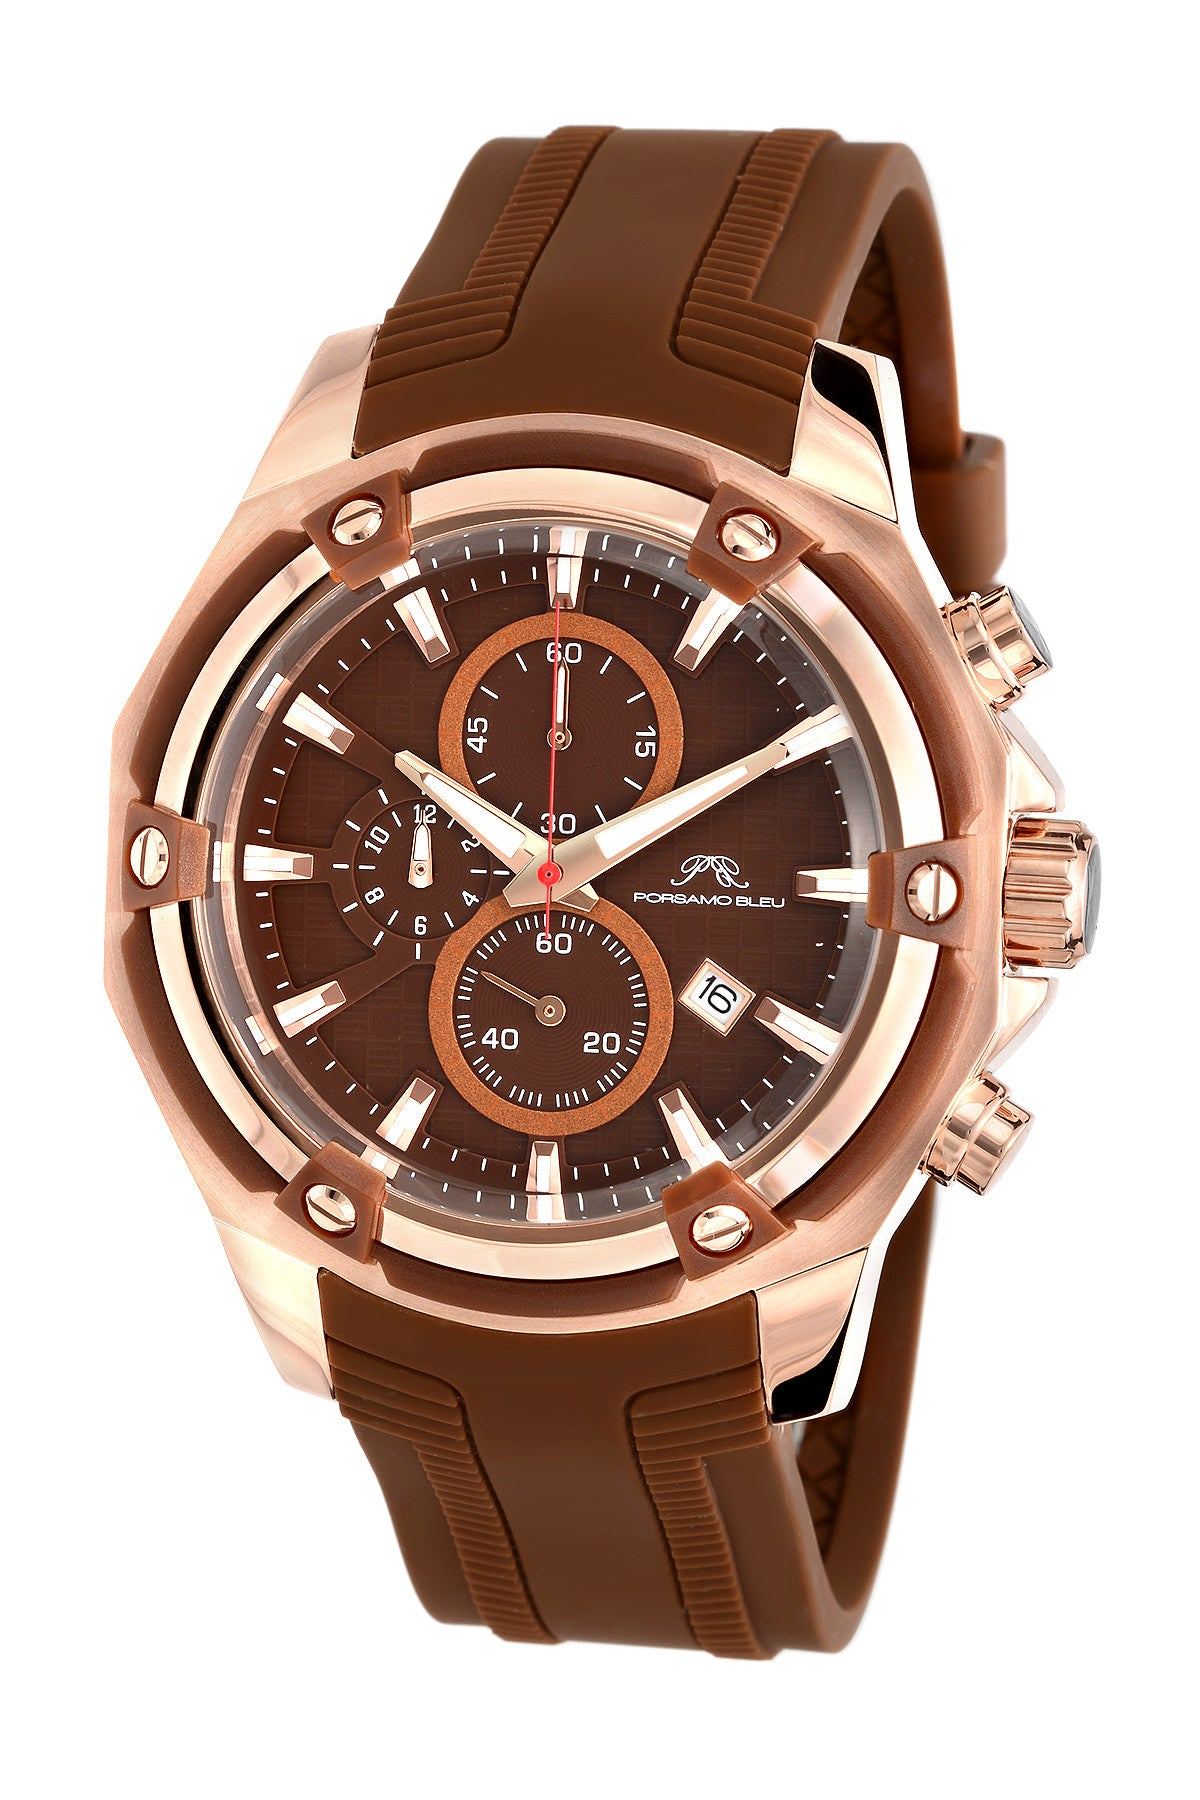 Porsamo Bleu Stavros luxury chronograph men's watch, silicone strap, rose, brown 481BSTR